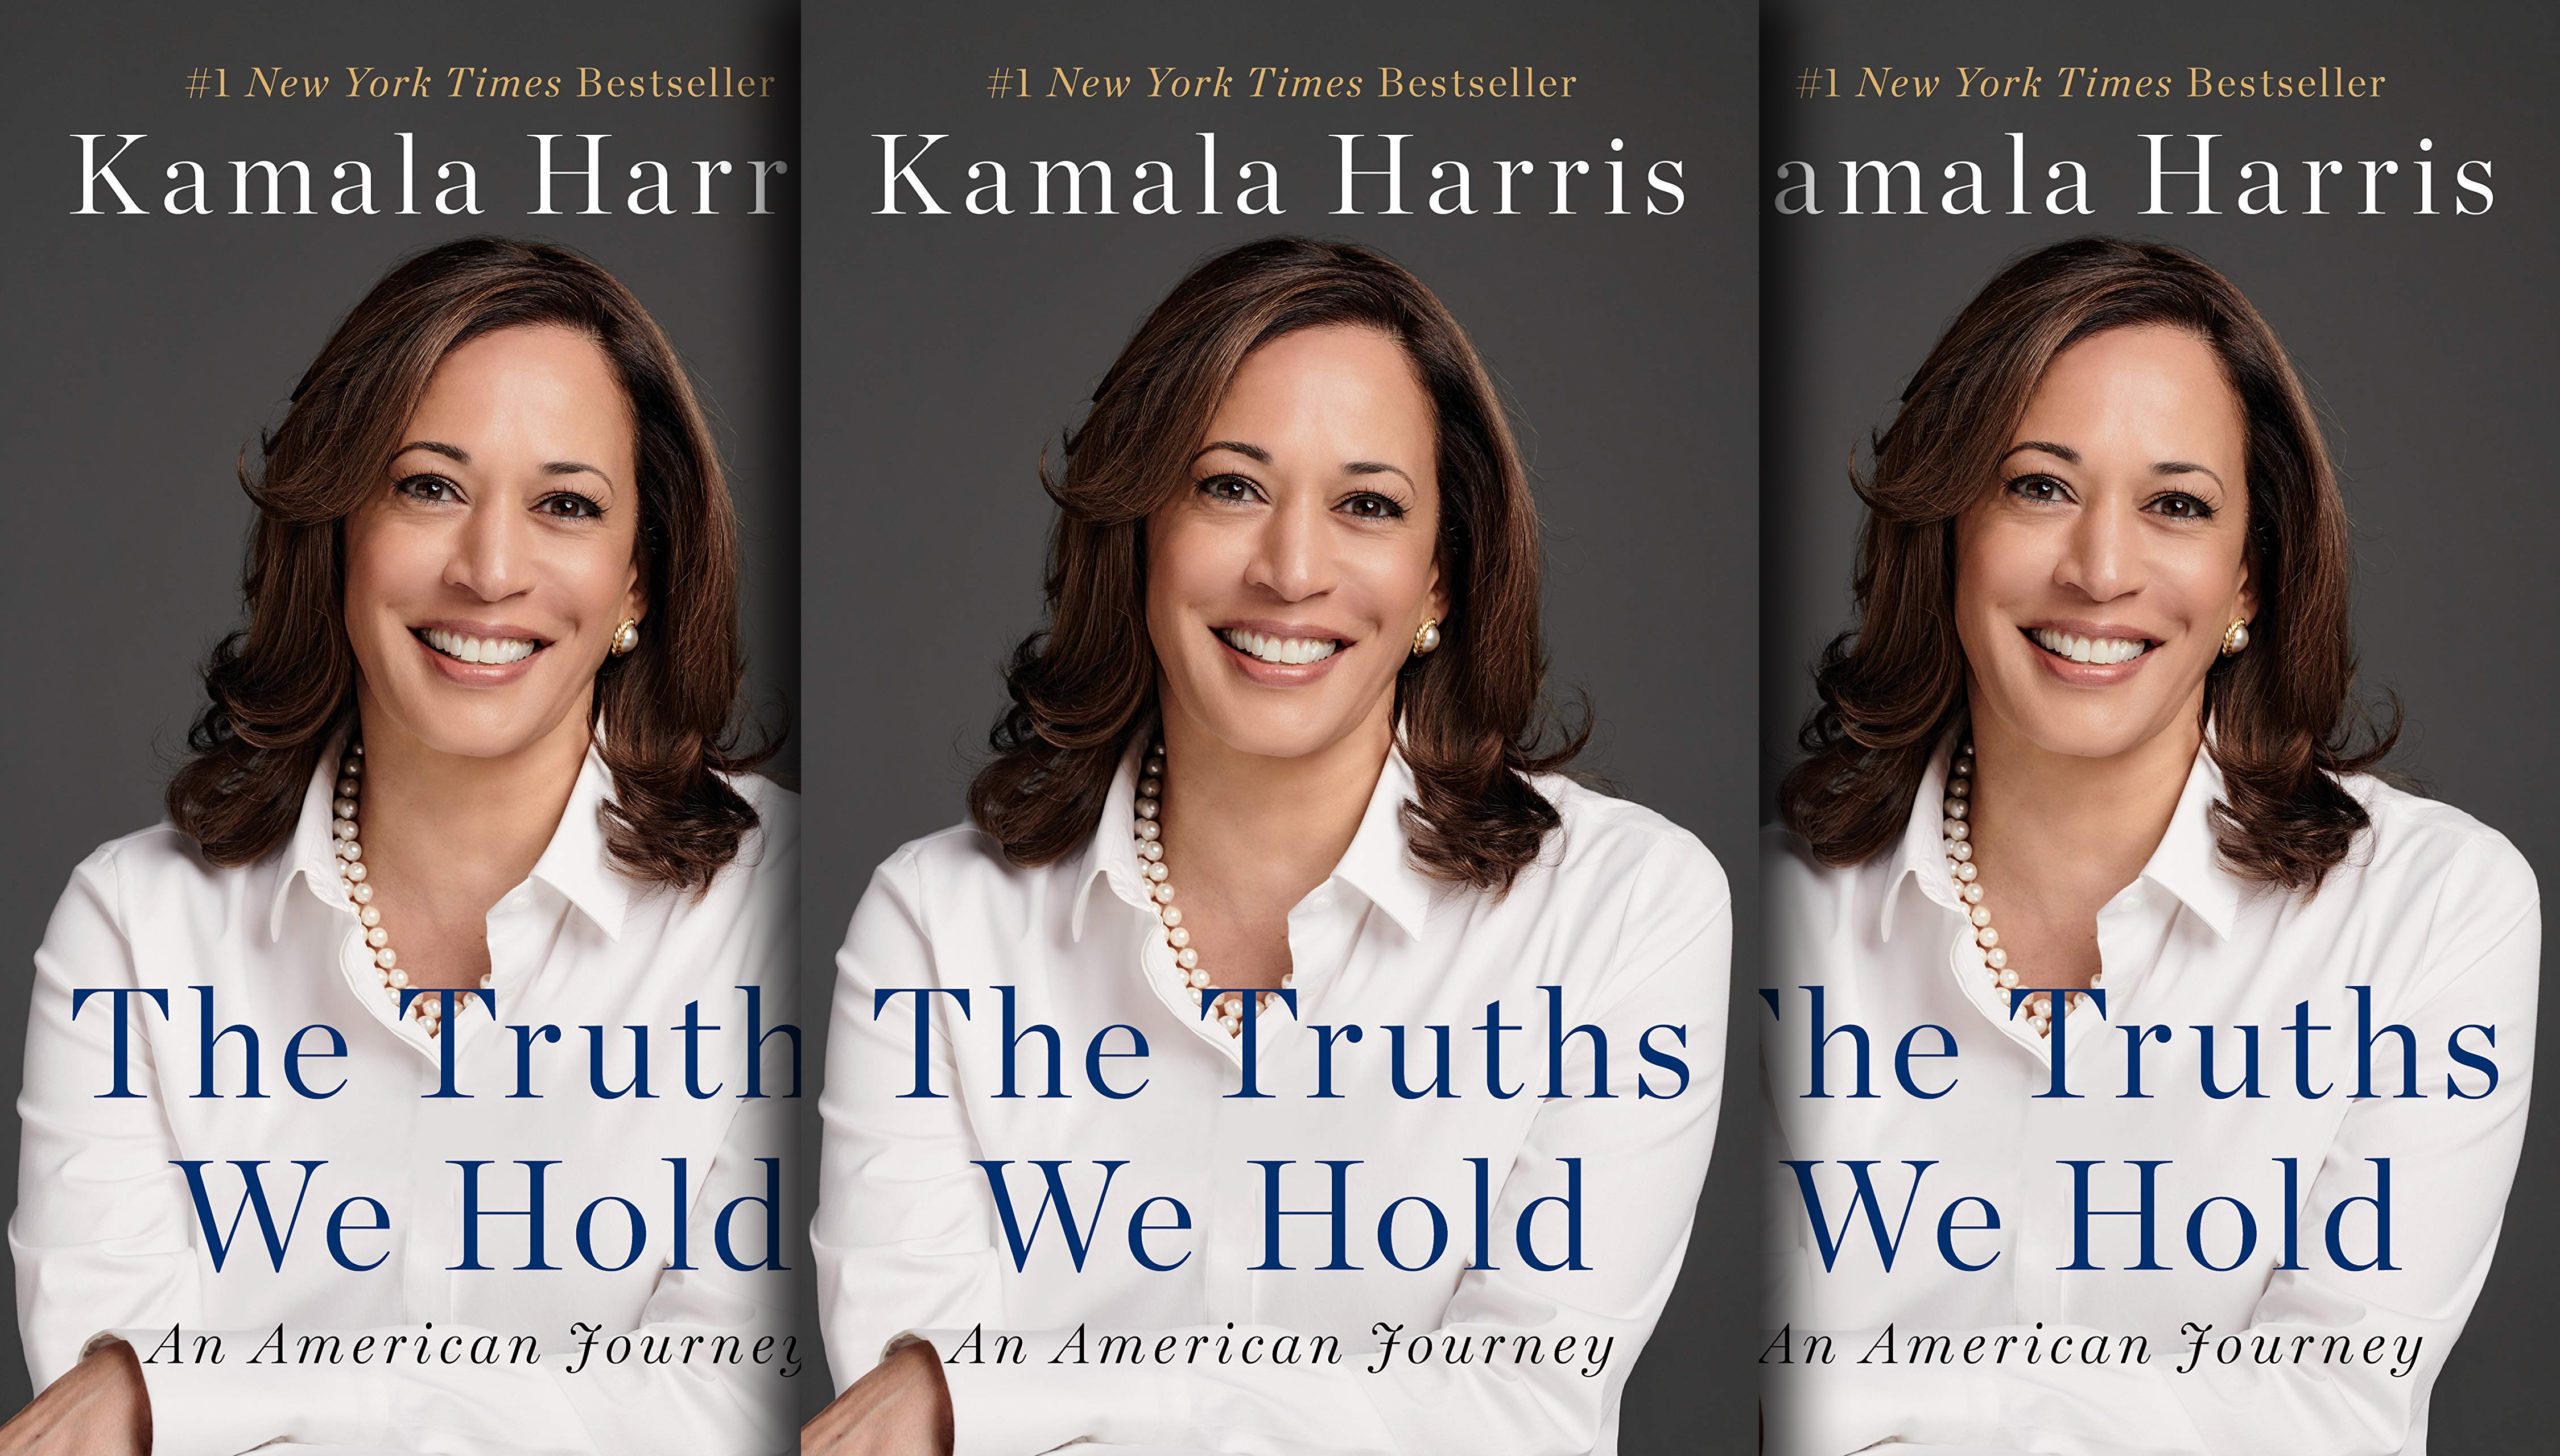 BOOK EXCERPT: The Truths We Hold: An American Journey, by Kamala Harris